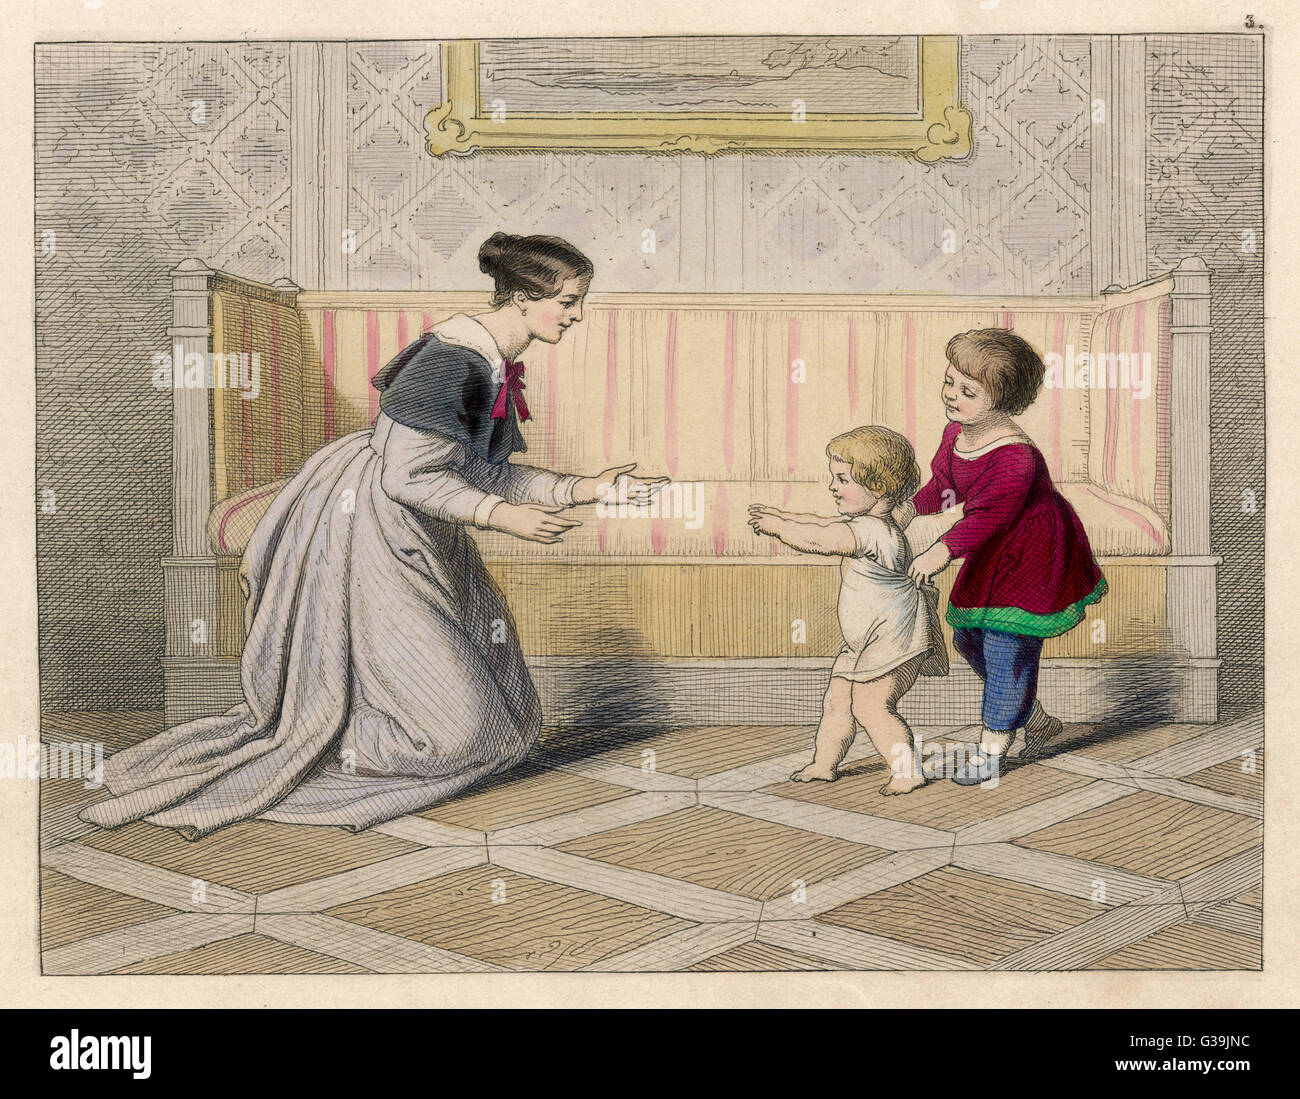 BABY'S FIRST STEPS         Date: 1852 - Stock Image